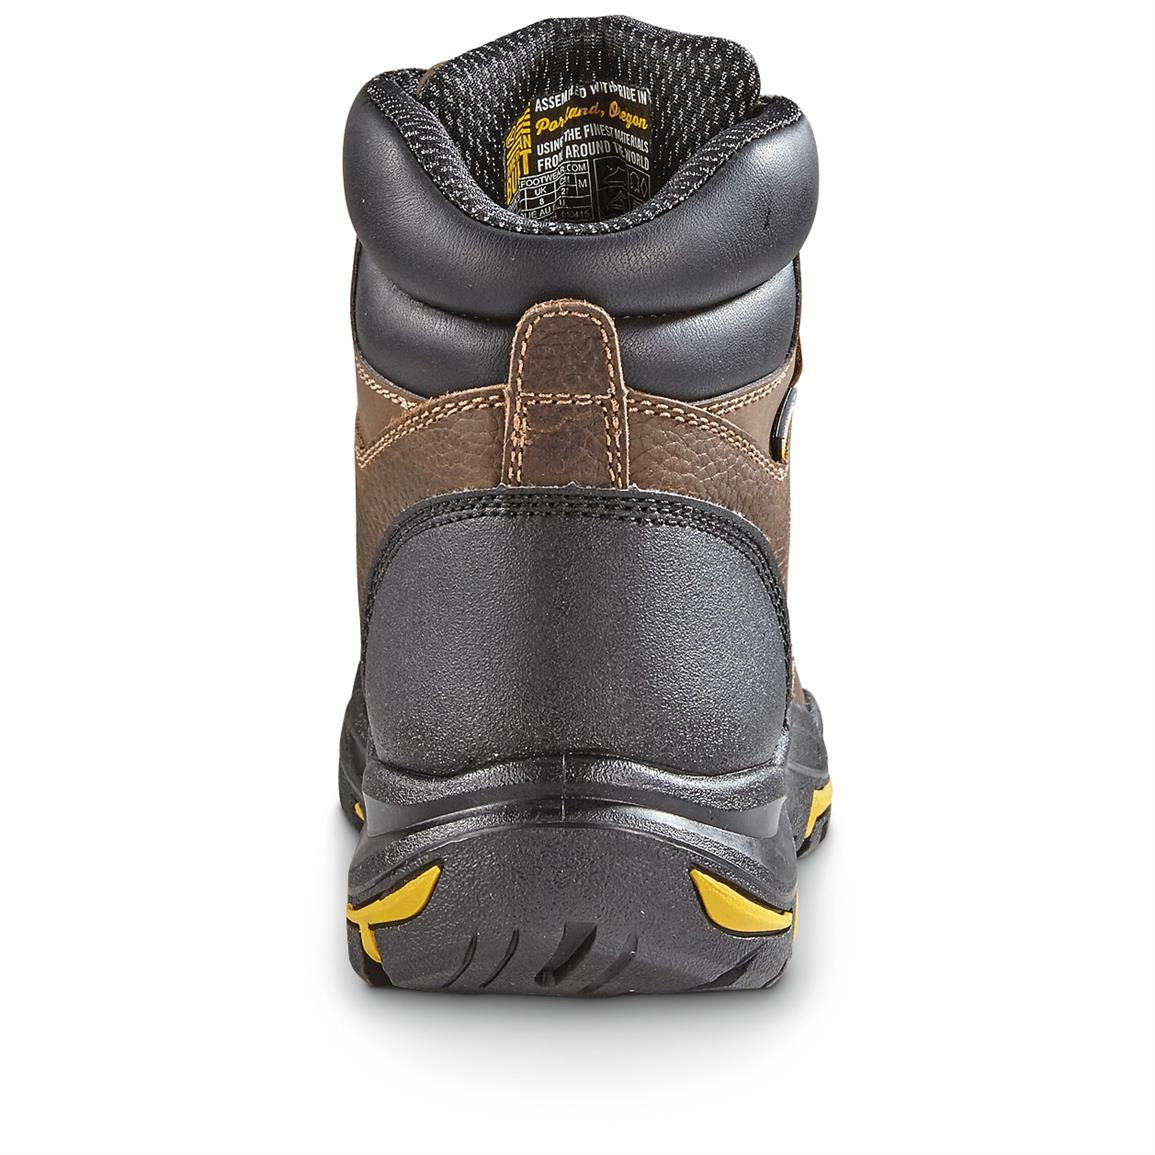 Million Step Comfort midsole resists breakdown and compression